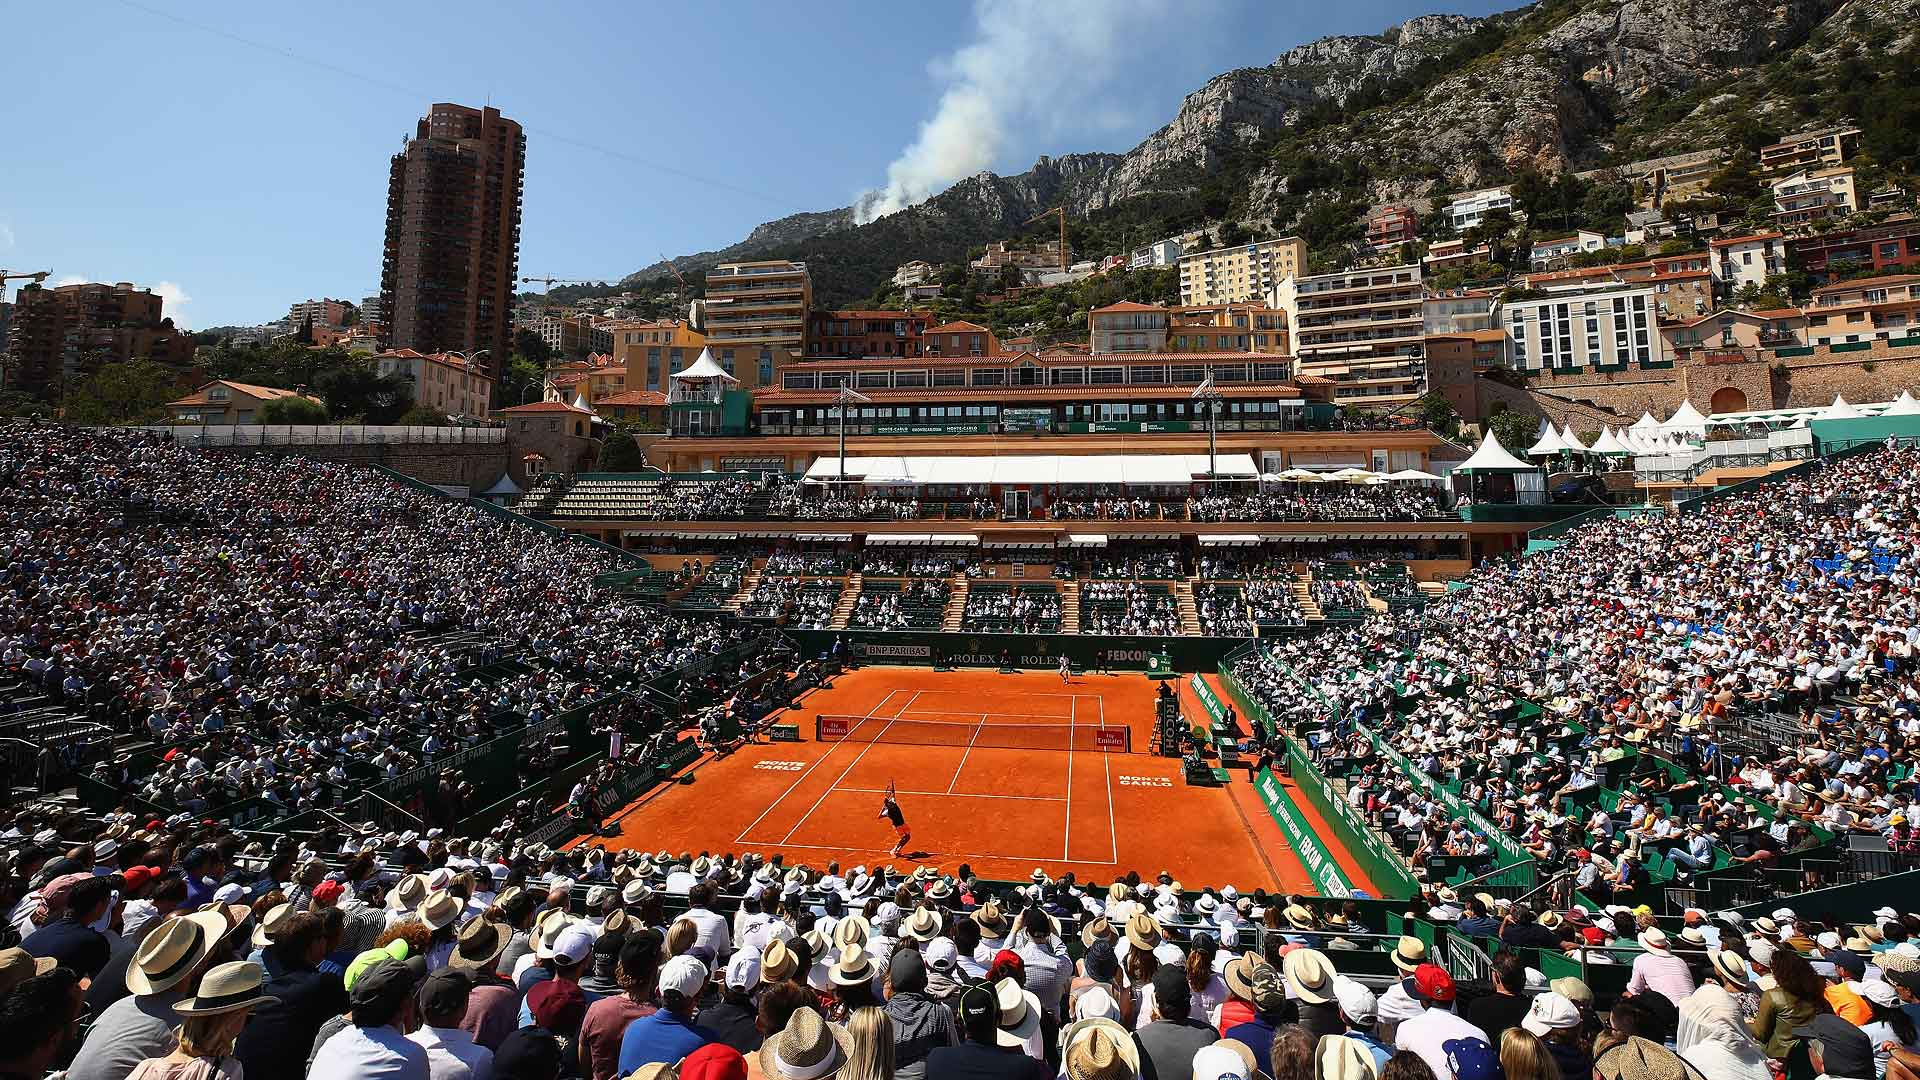 Monte Carlo Open 2020 Seating Guide Championship Tennis